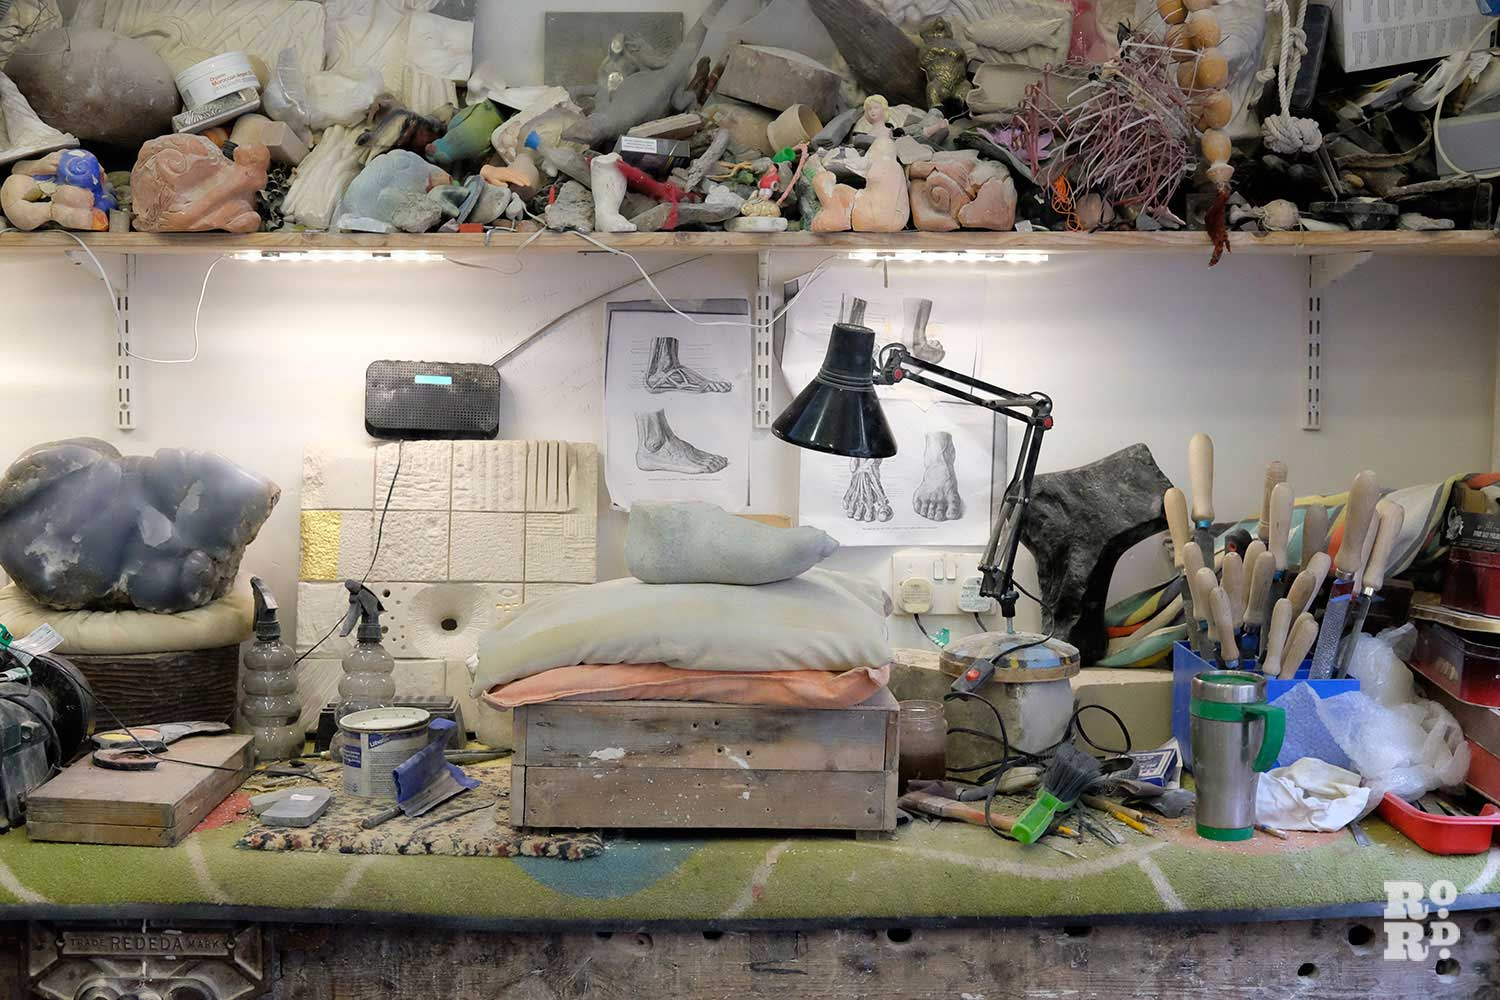 Paula Haughney's workspace